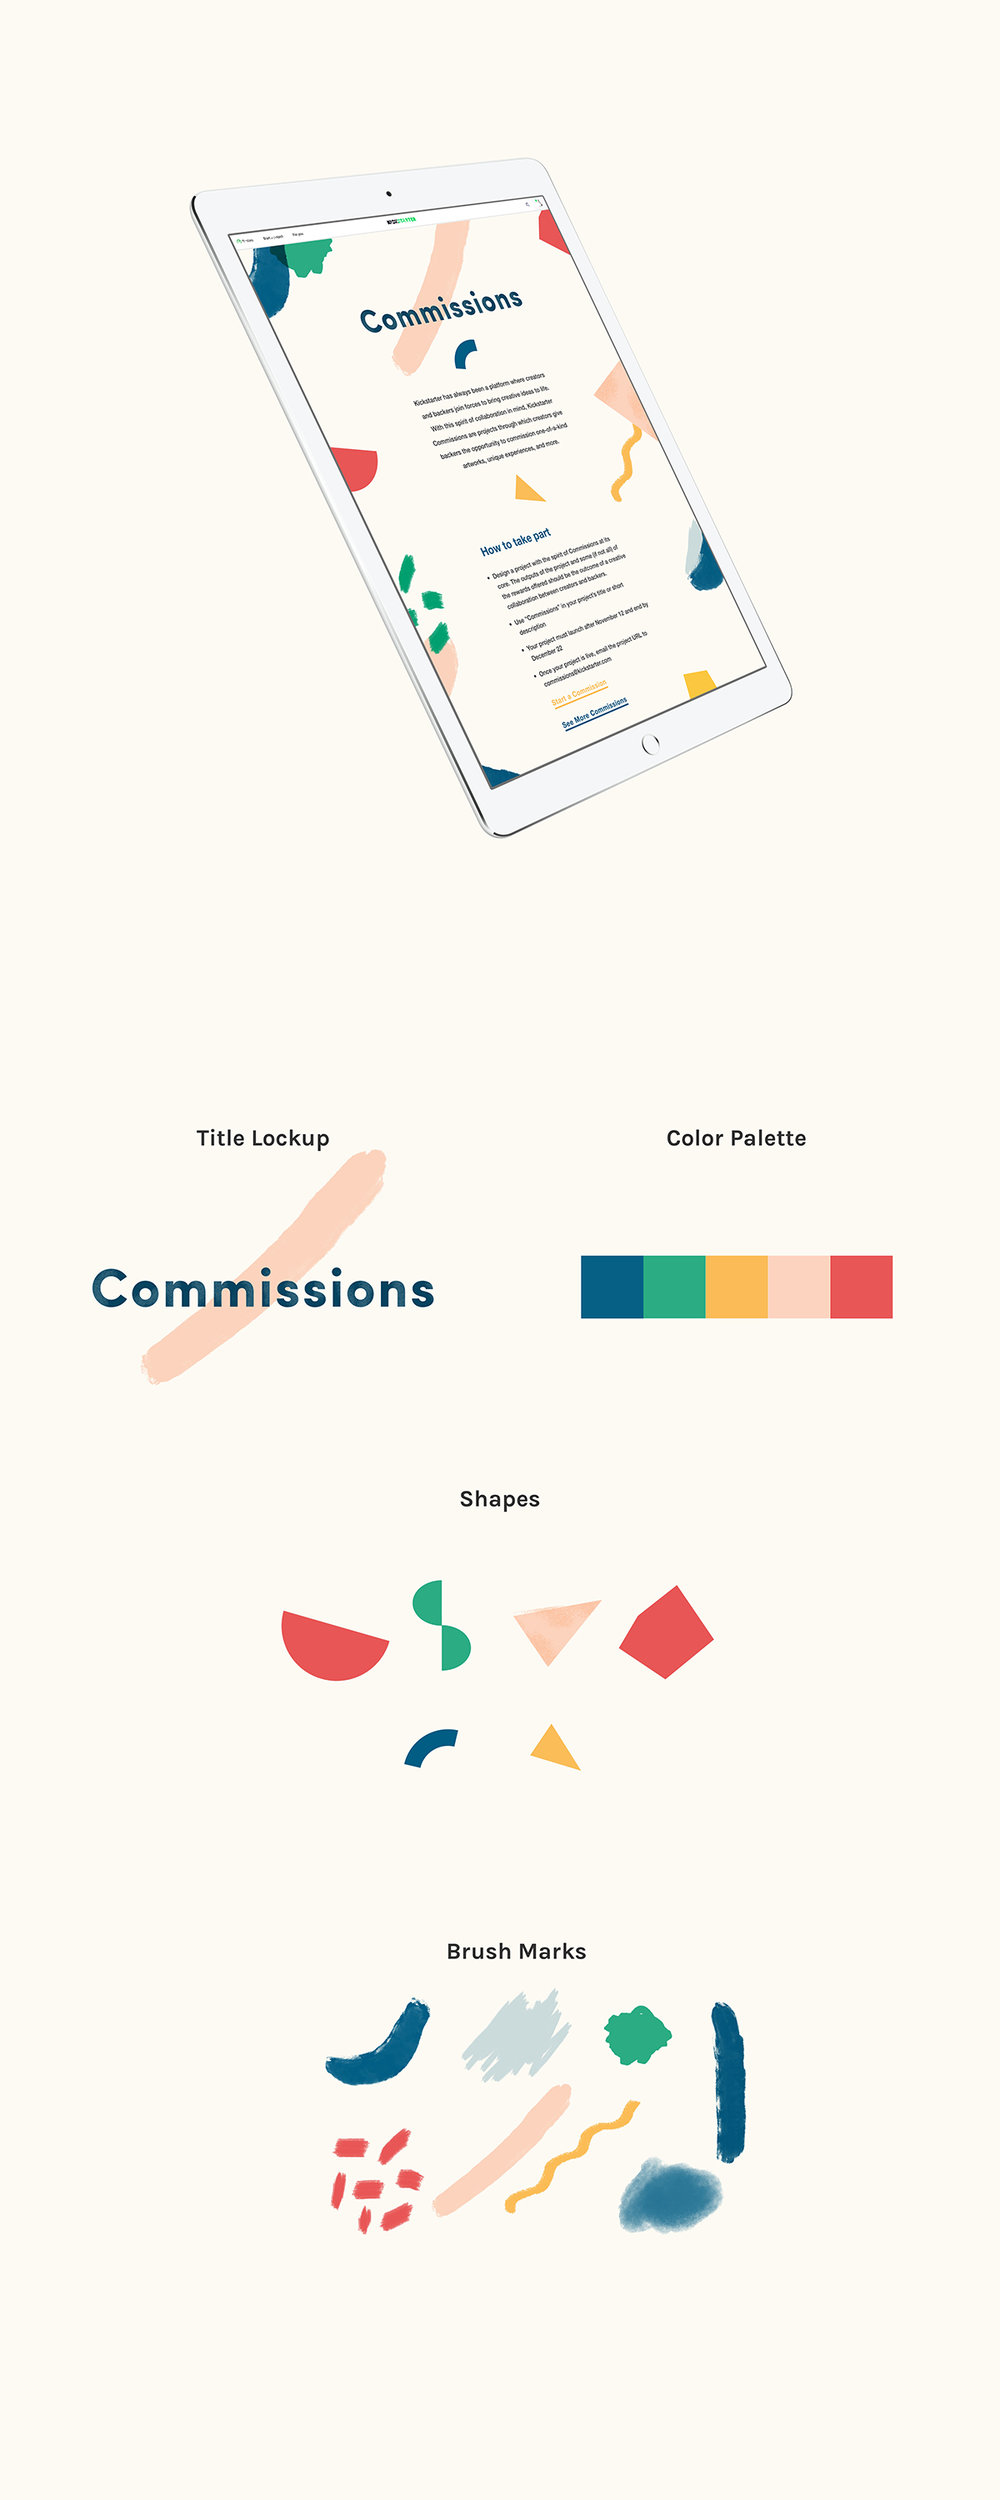 commissions-layout.jpg